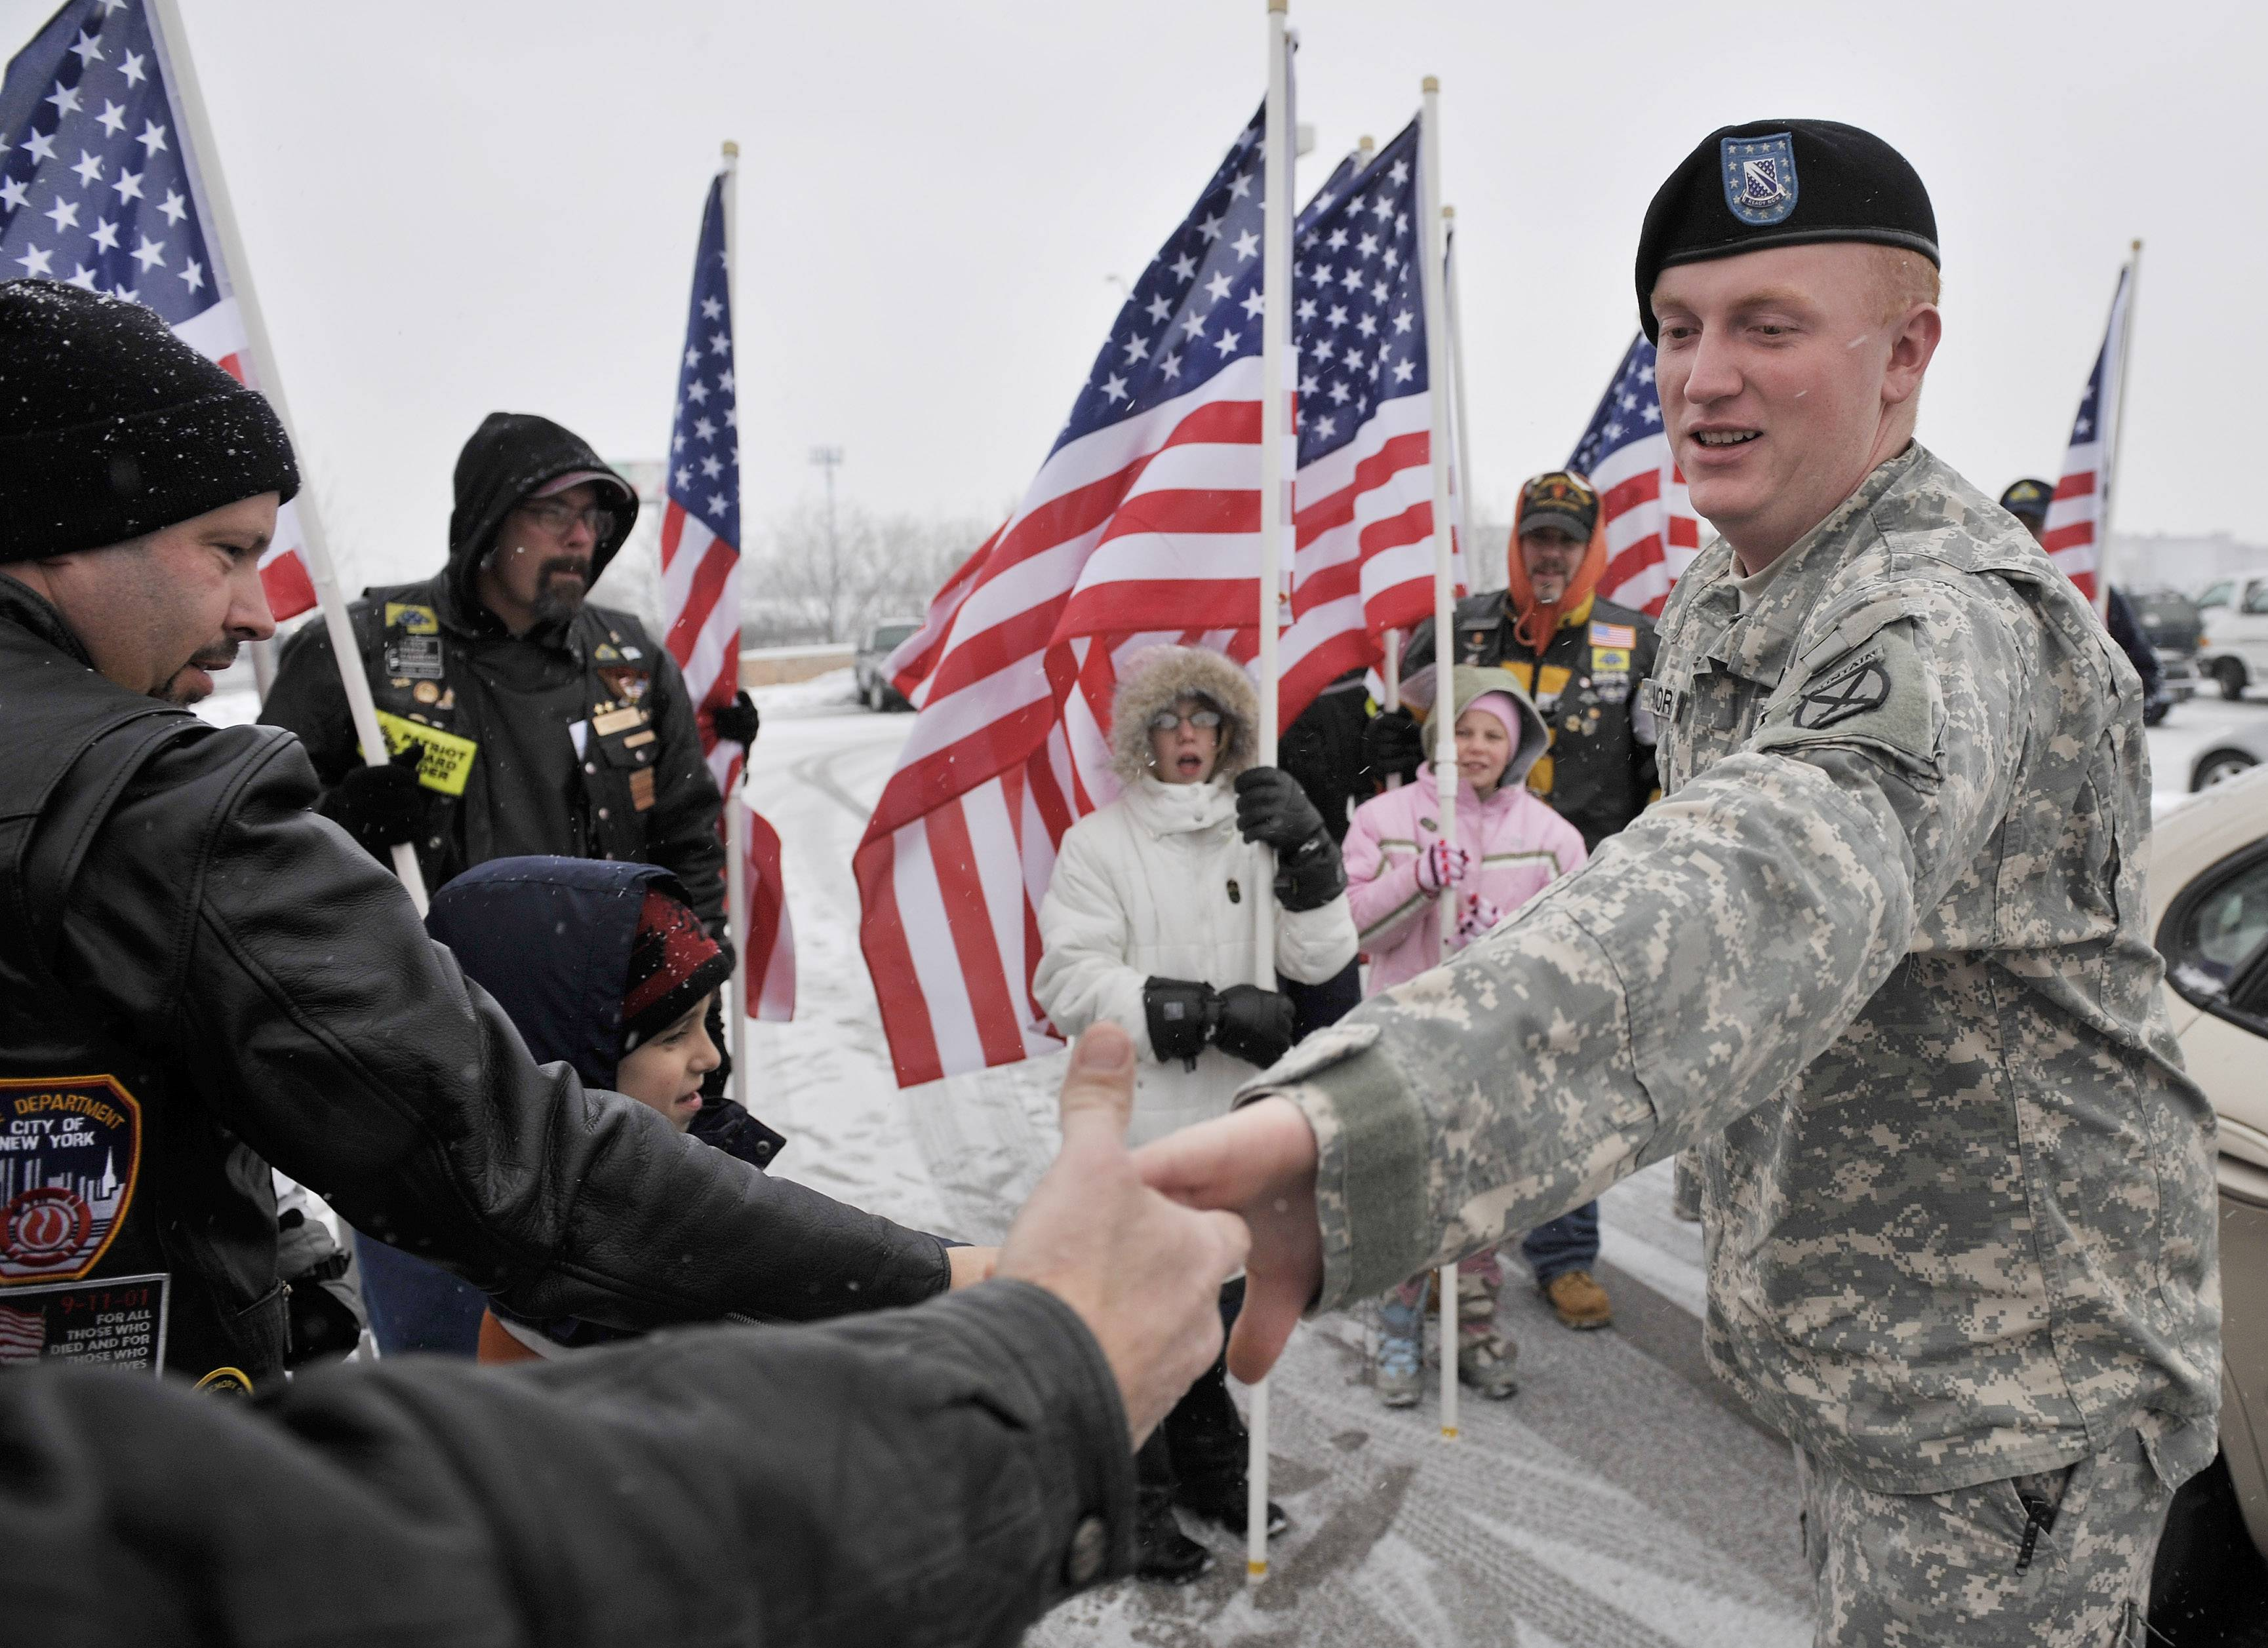 John Moran of North Barrington is greeted by the Patriot Guard Riders at the Des Plaines Oasis upon his return from active duty in Iraq.